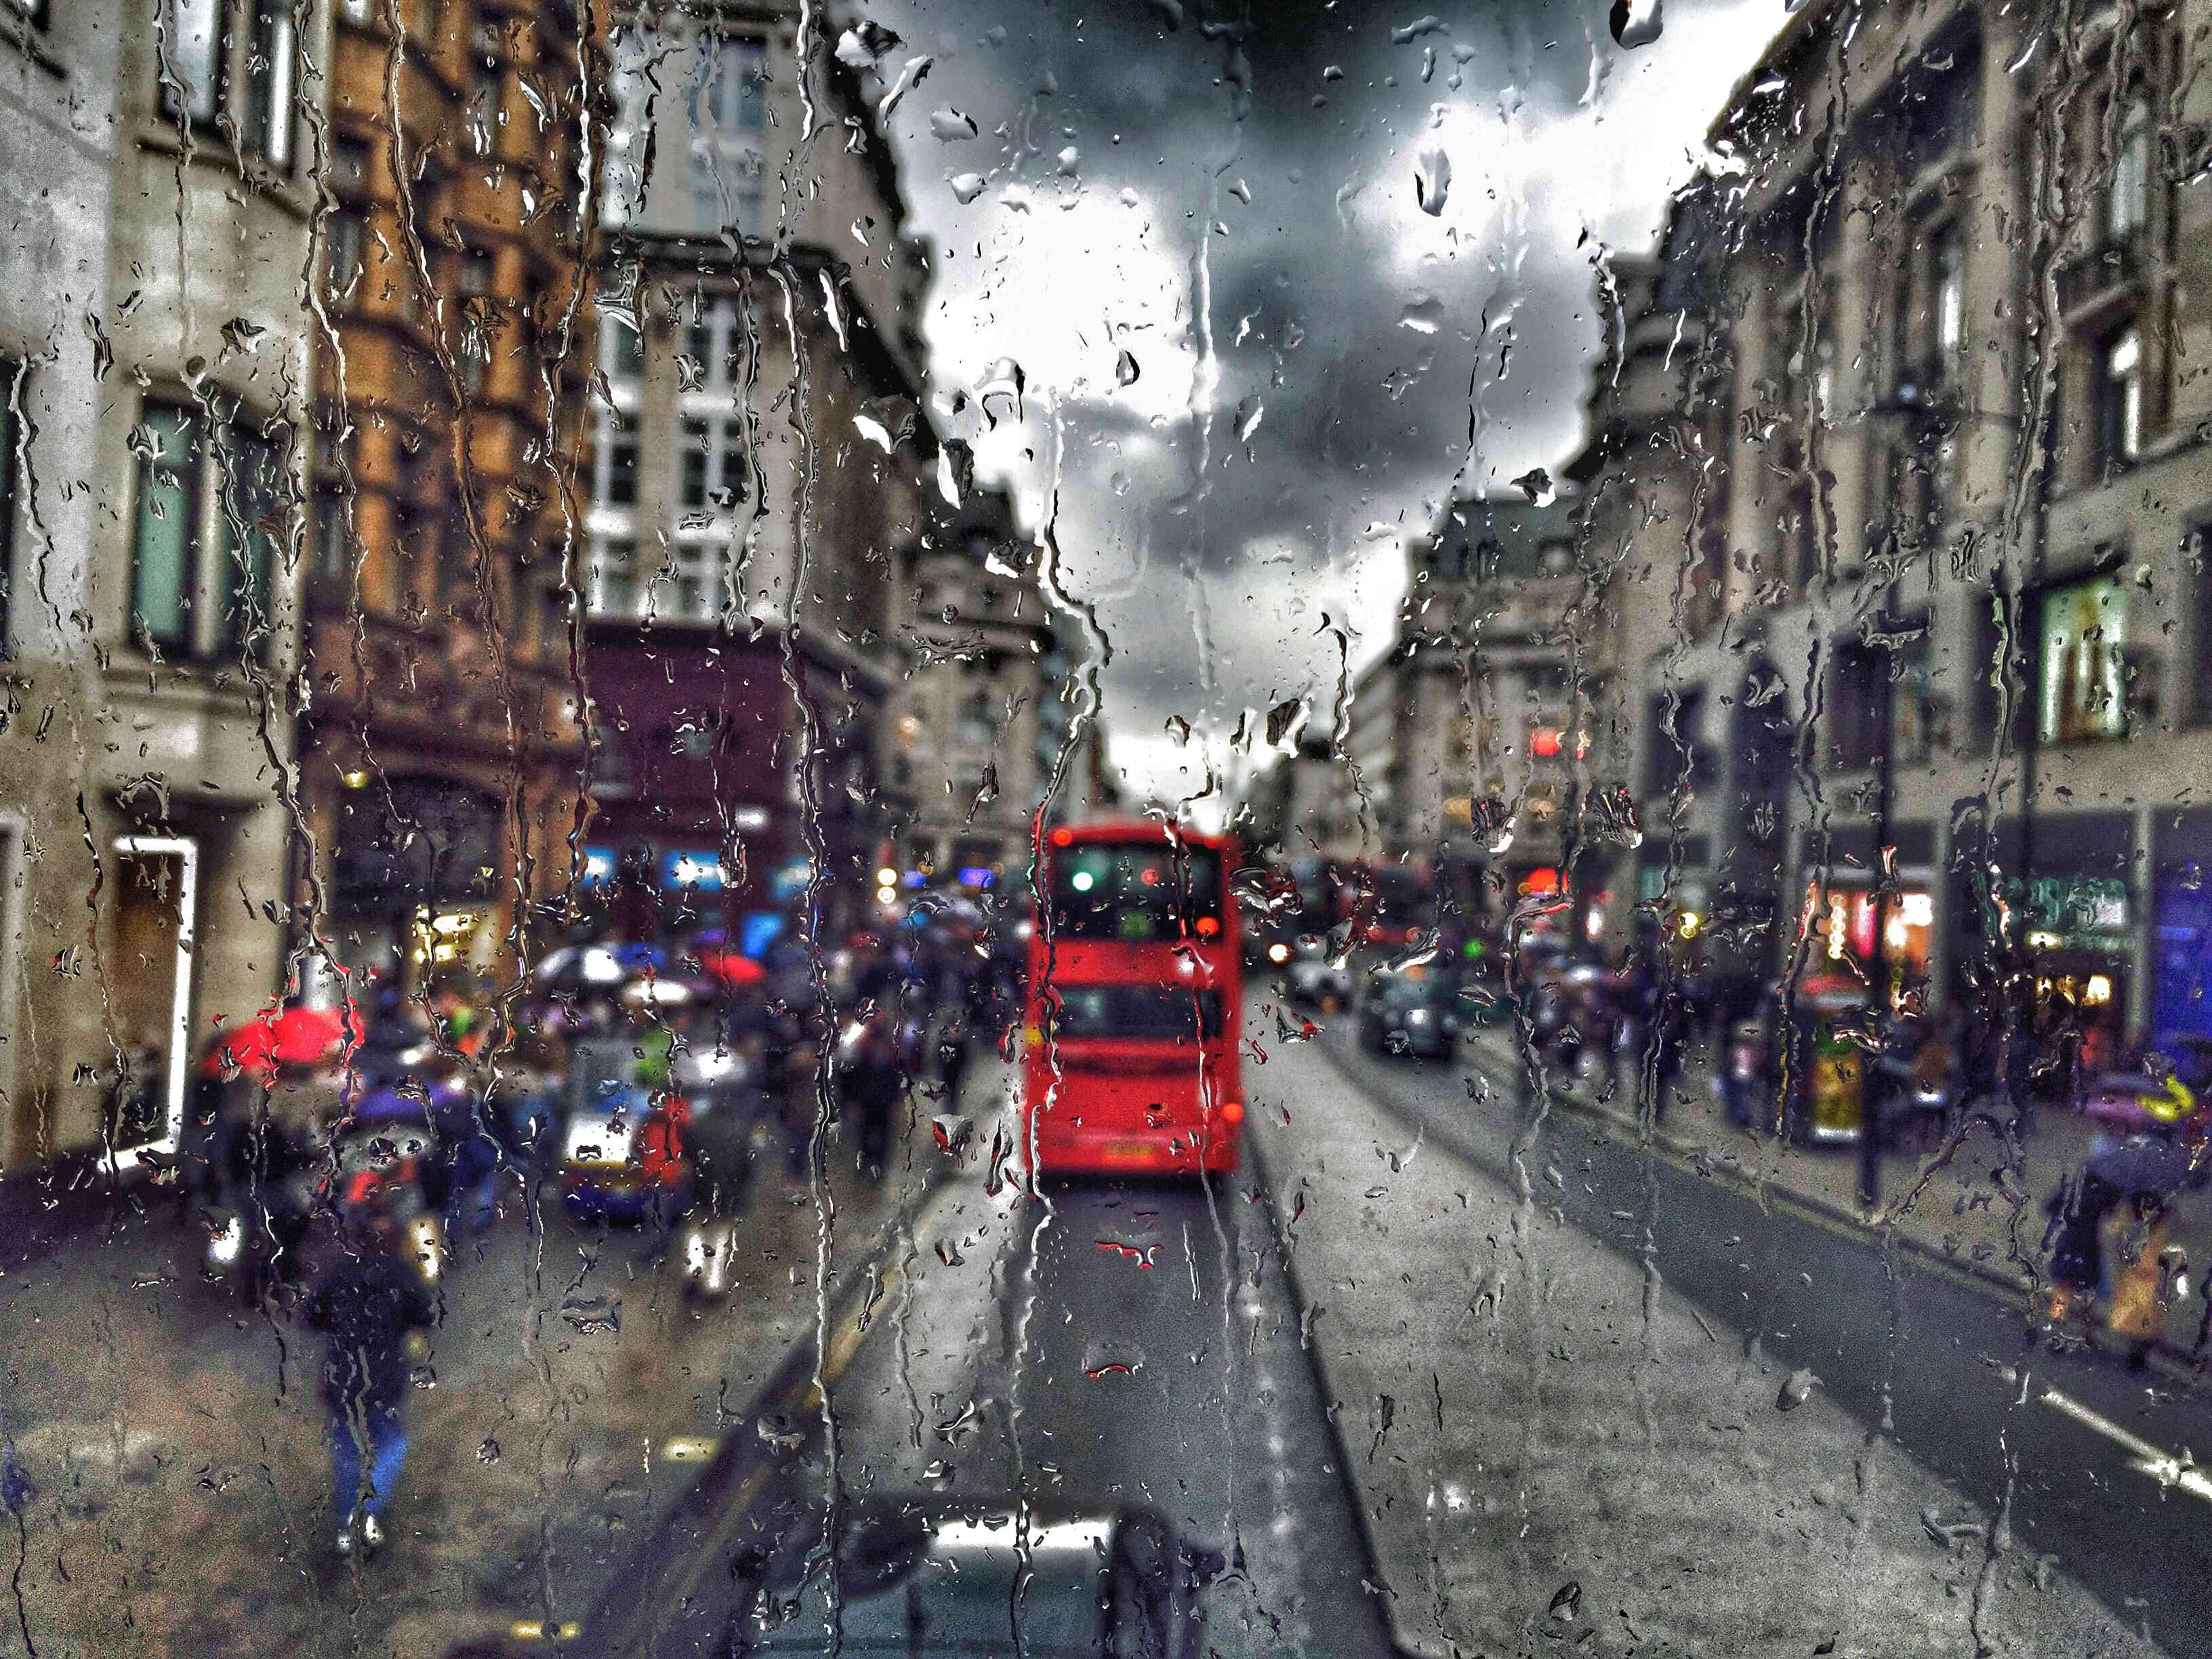 Traffic On a Road In England Amidst Buildings Seen Through Wet Glass Window On Rainy Day